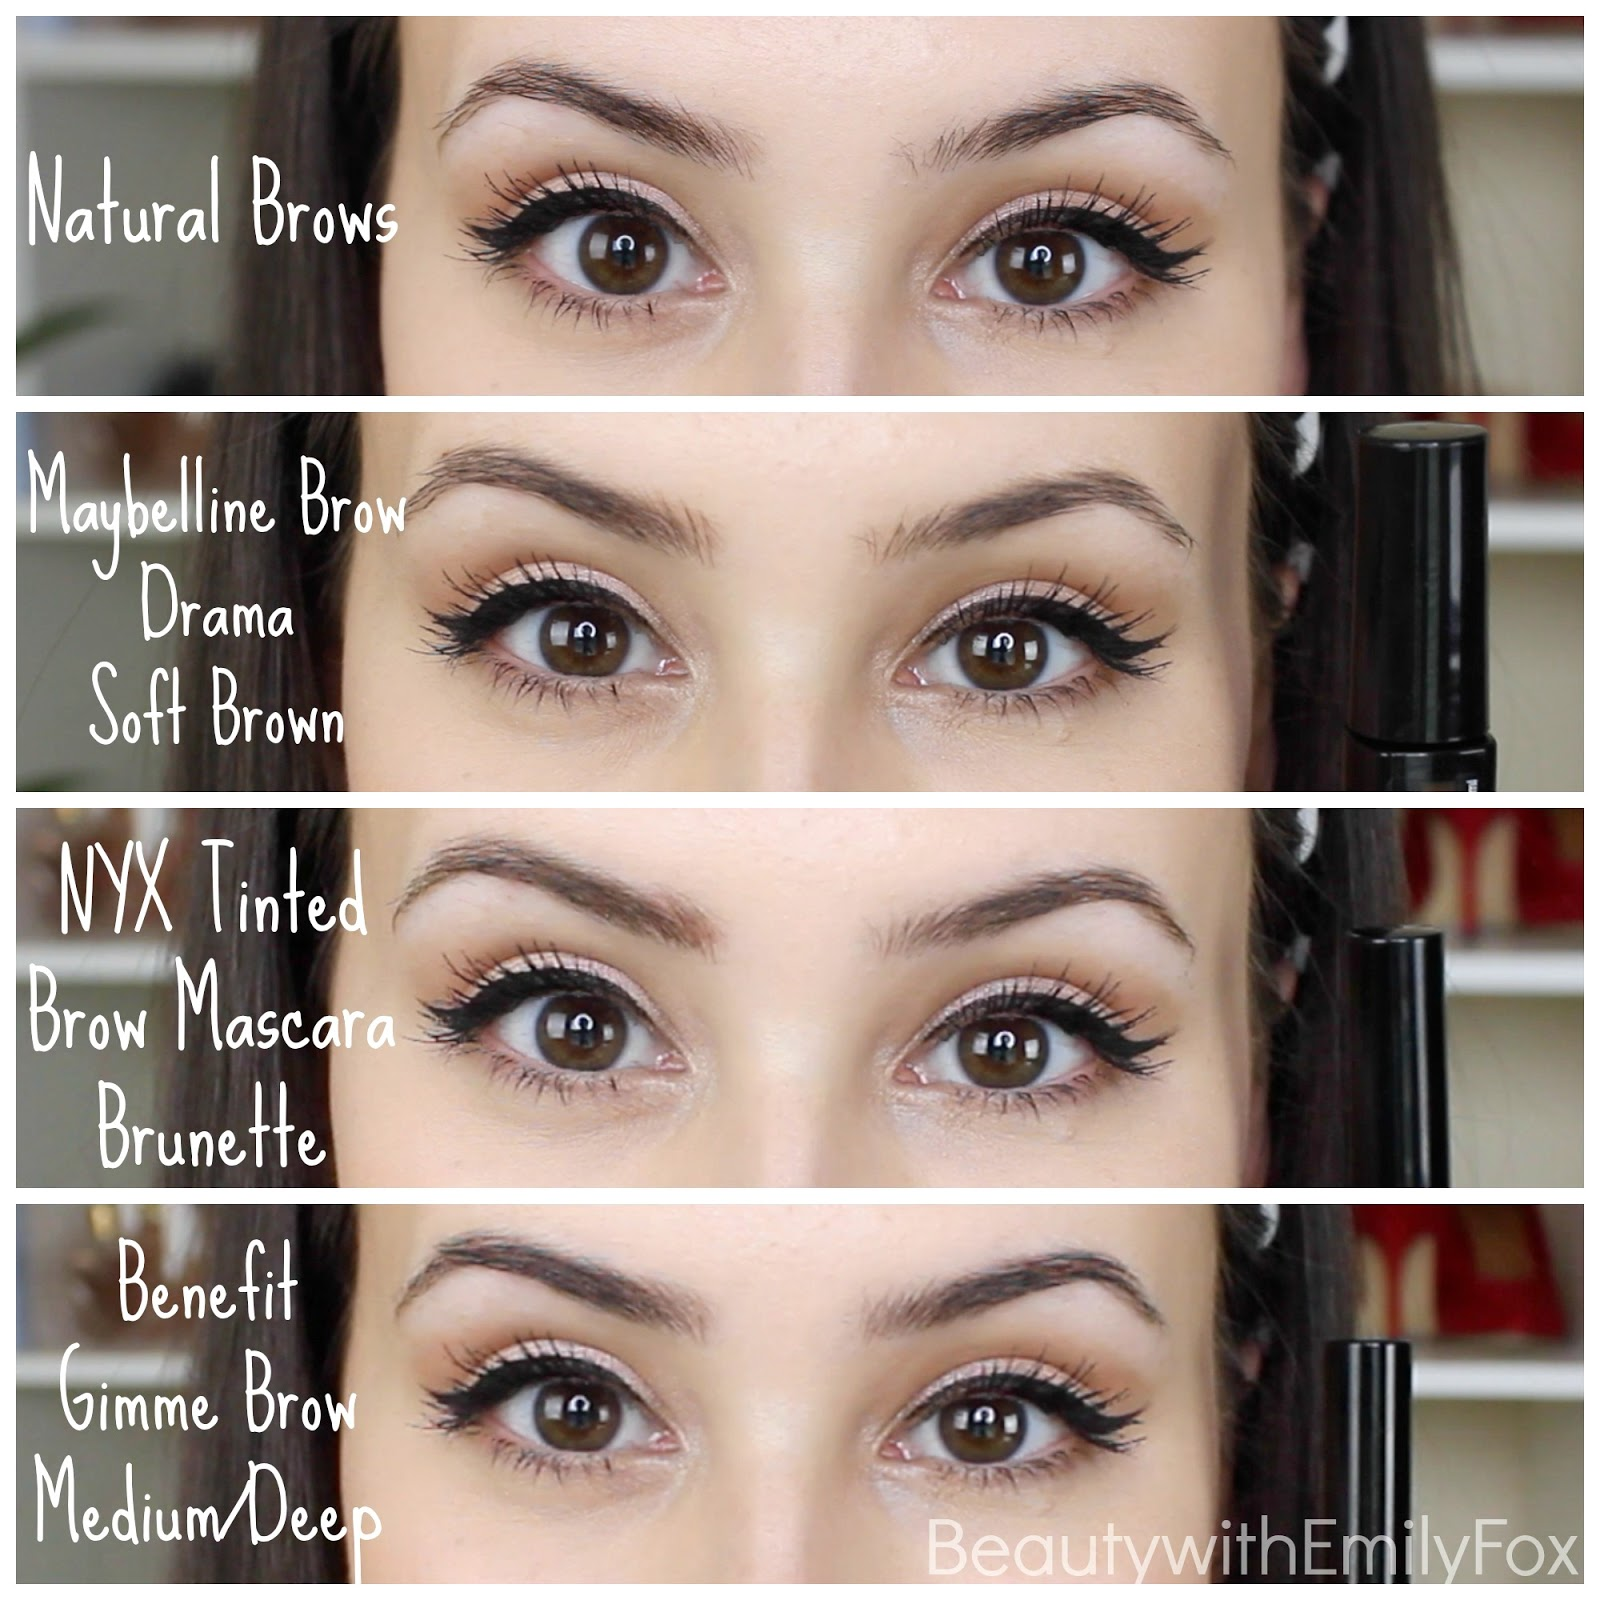 Beautywithemilyfox Best Tinted Brow Gel Nyx Maybelline